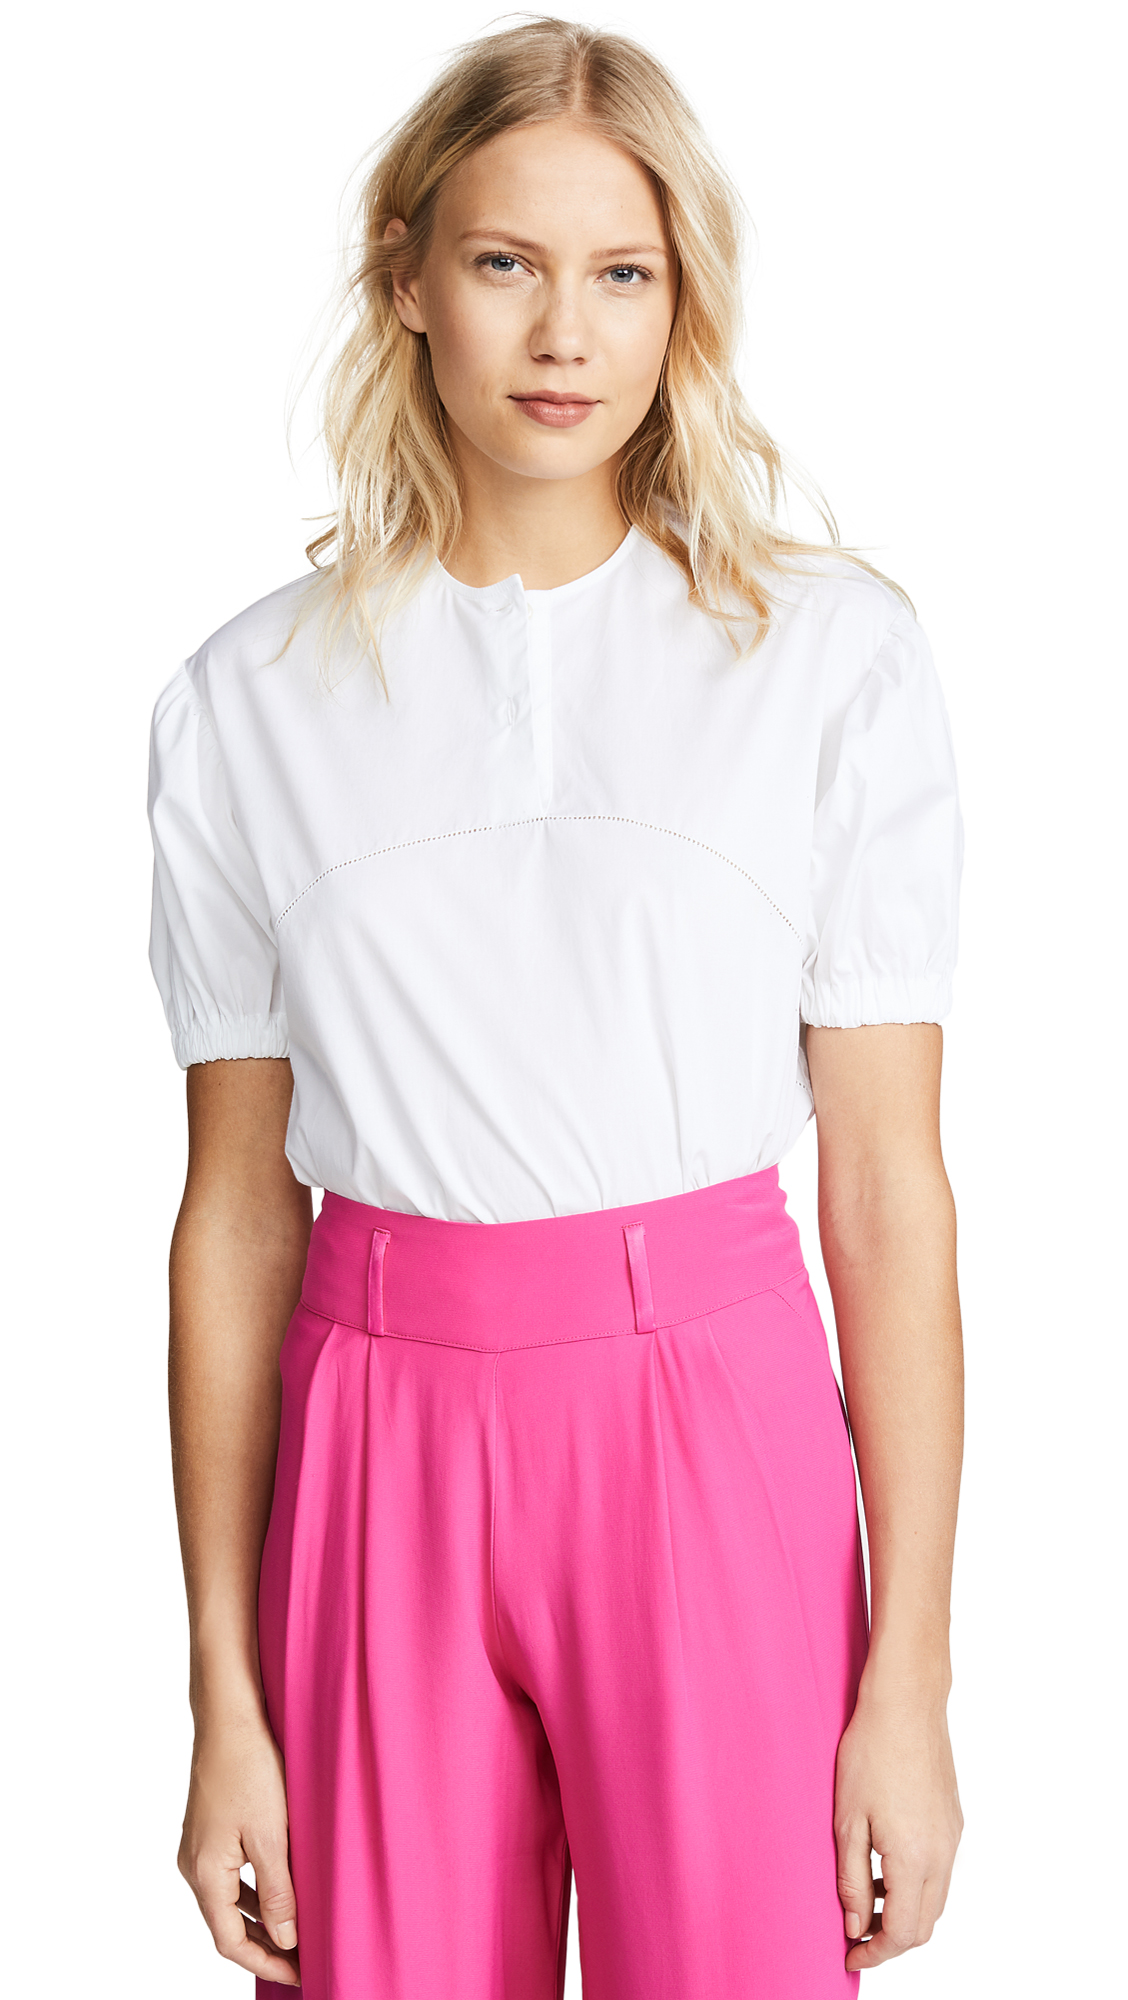 Stella Jean Short Sleeve Blouse - White